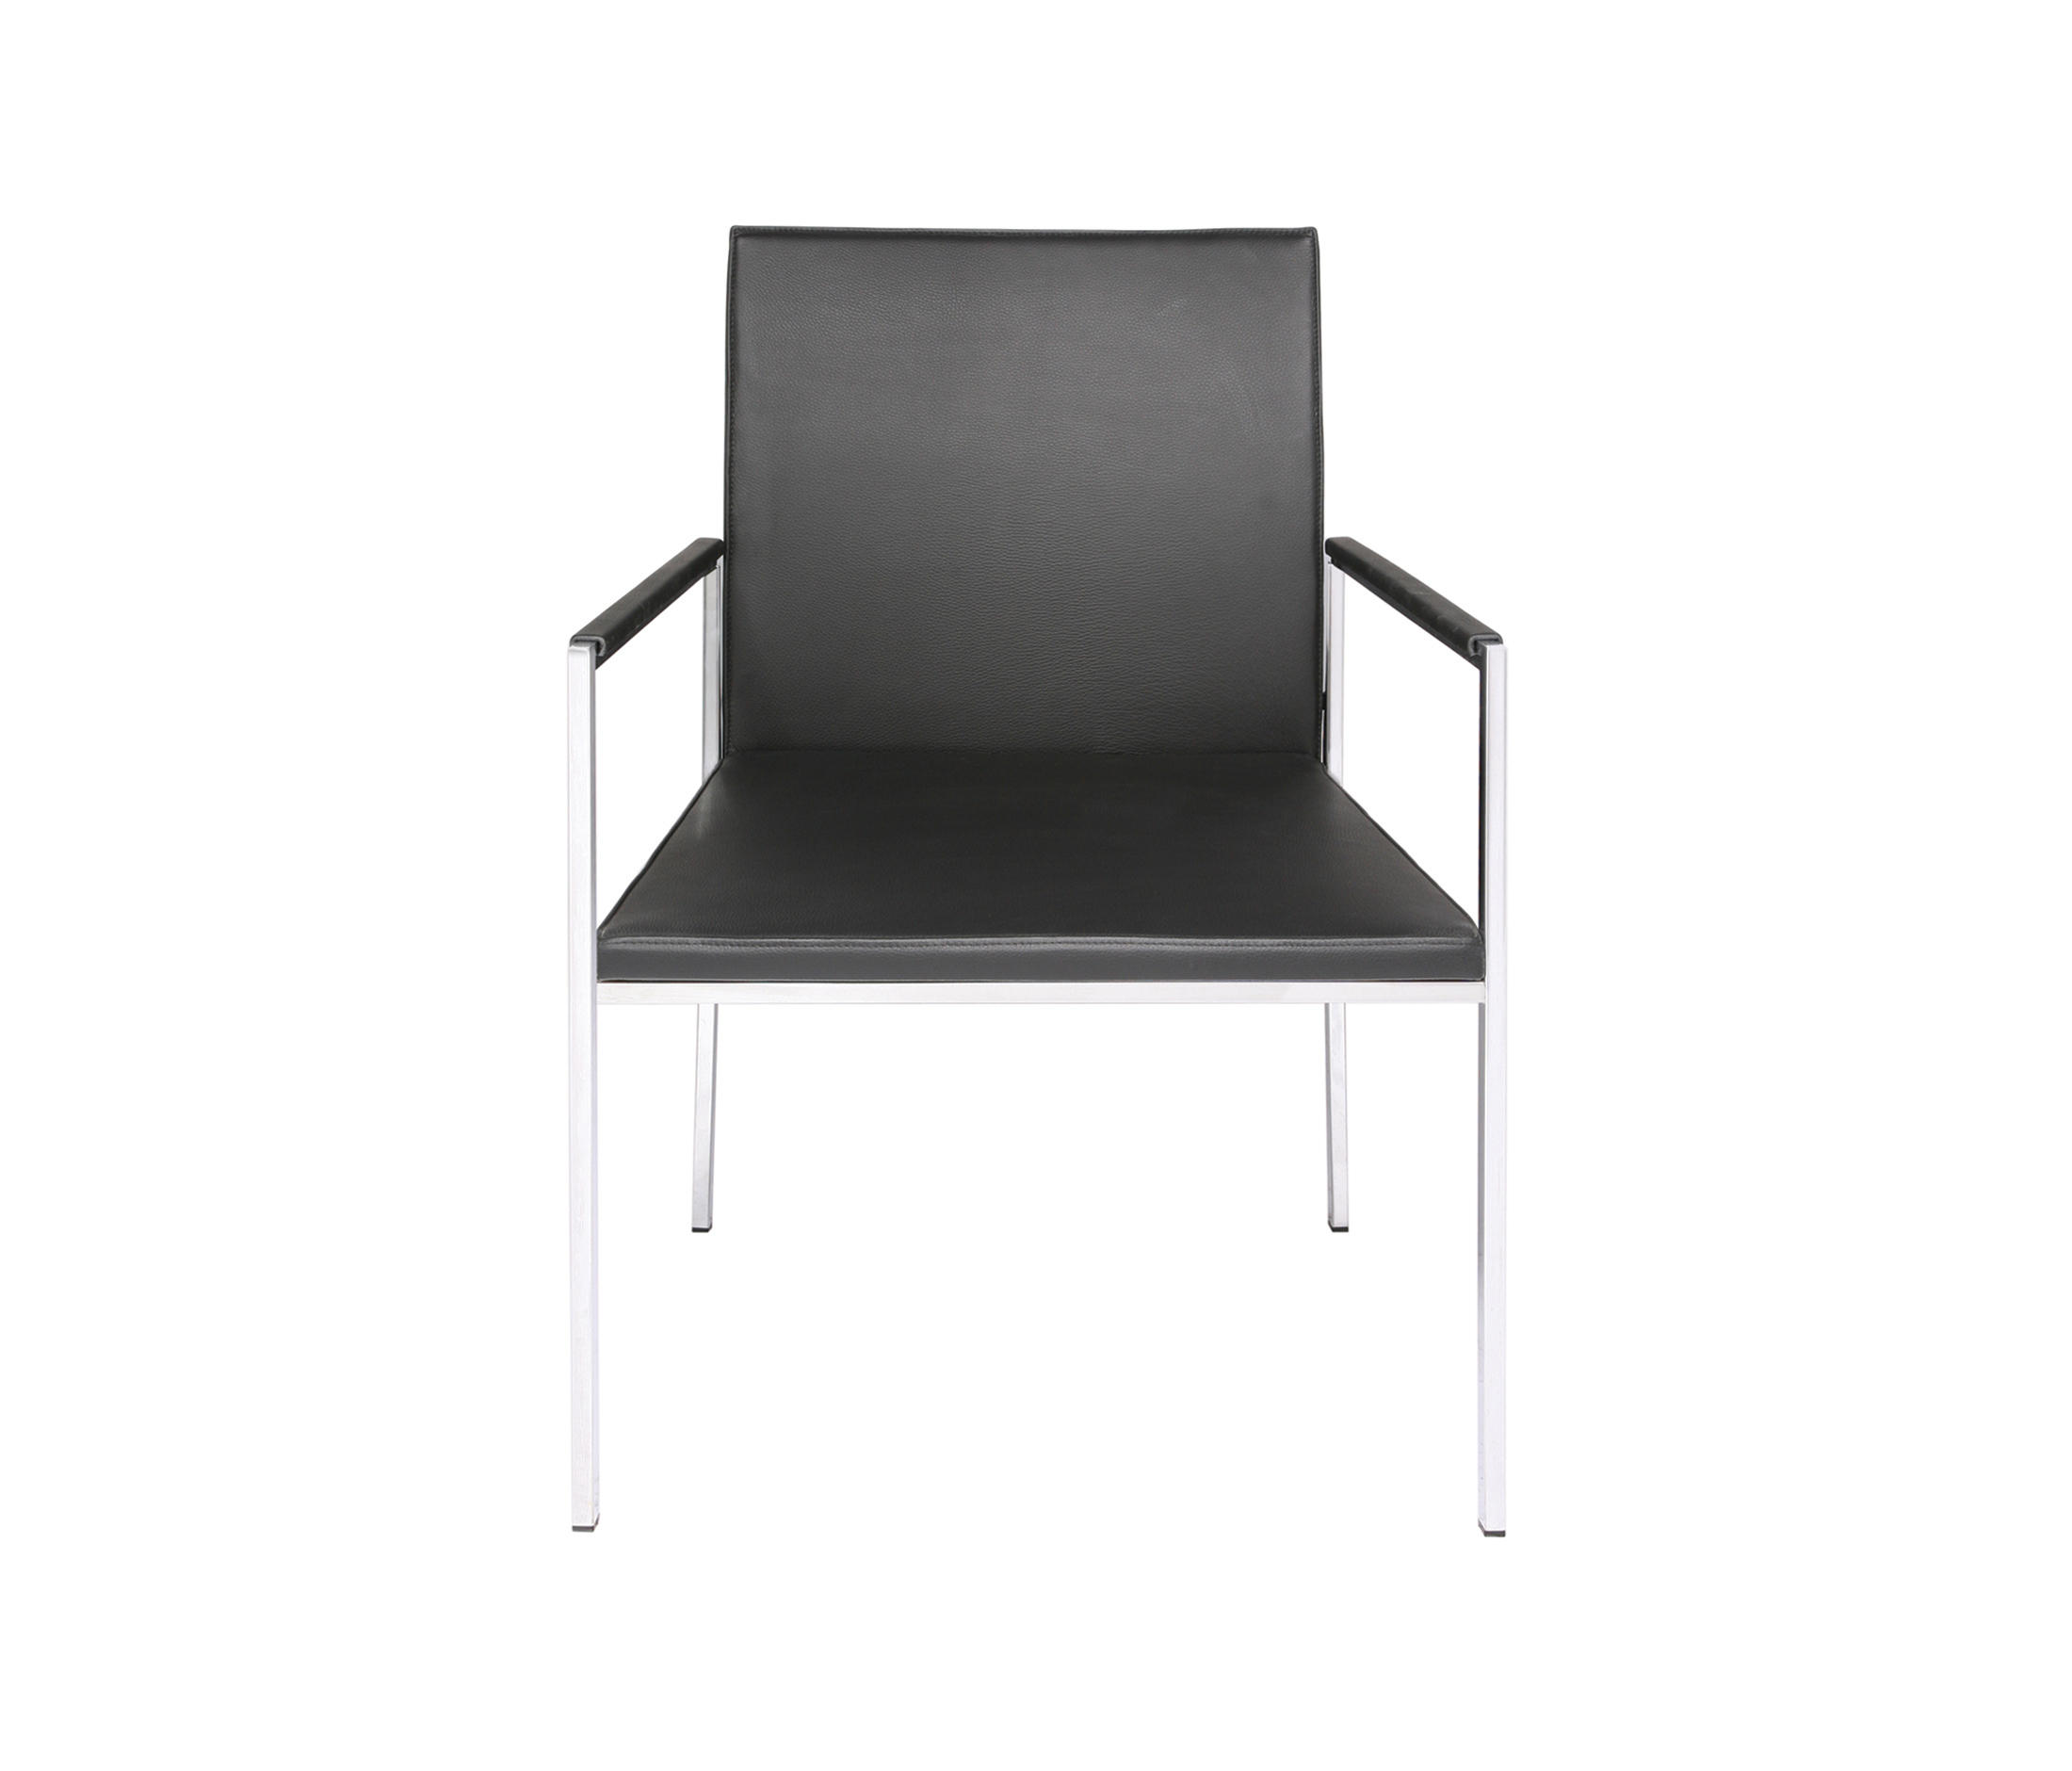 Nivo Chair Chairs From Kff Architonic